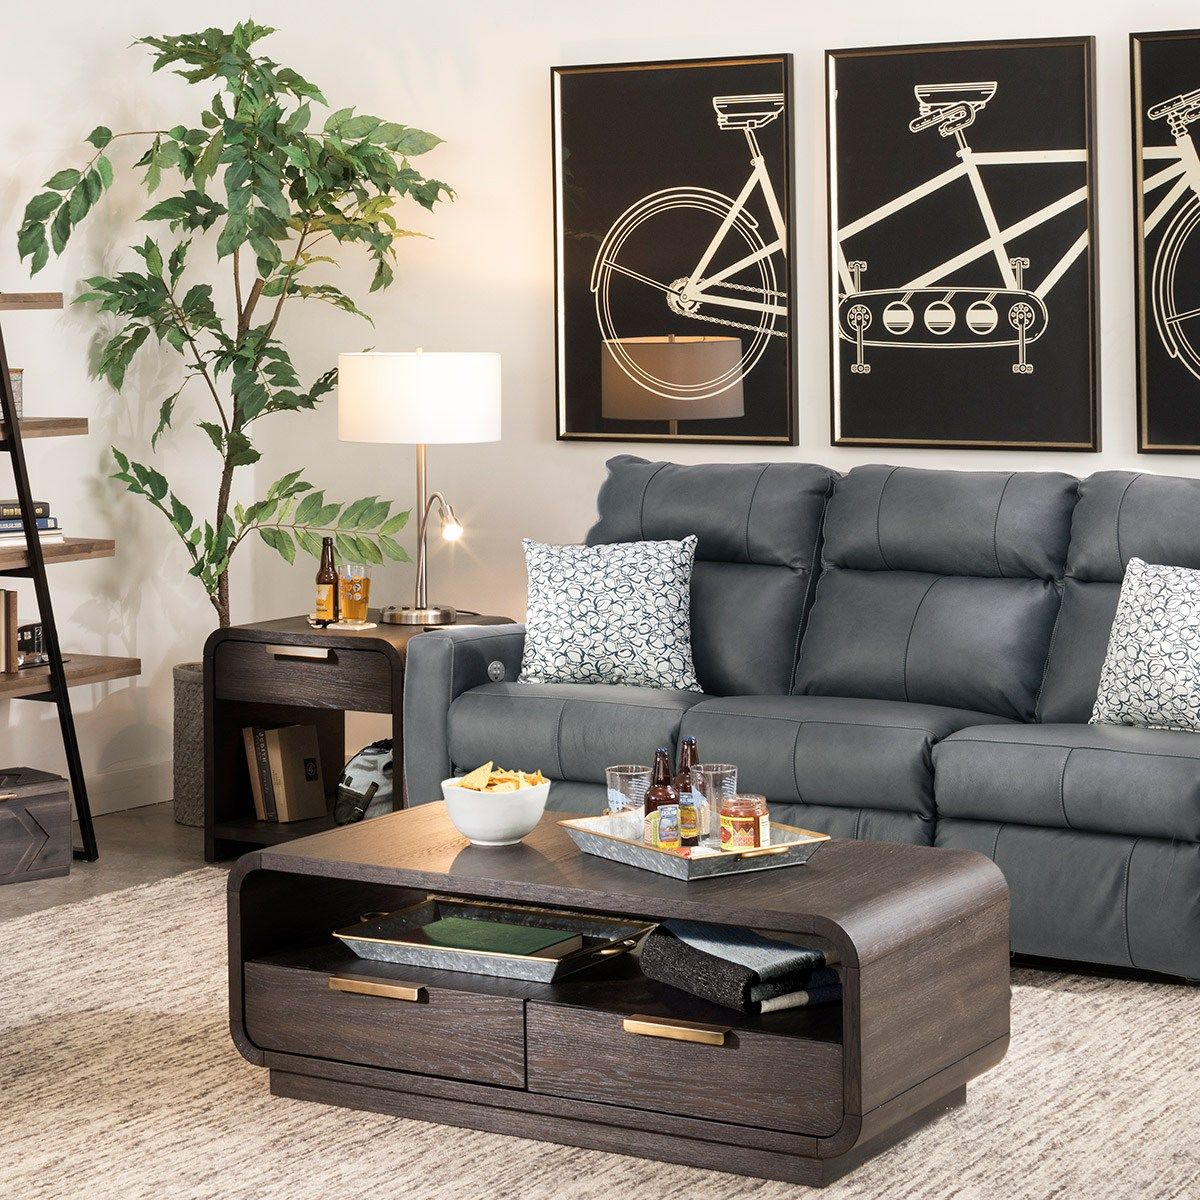 Why You Might Want to Consider a Recliner (7 Great Reasons